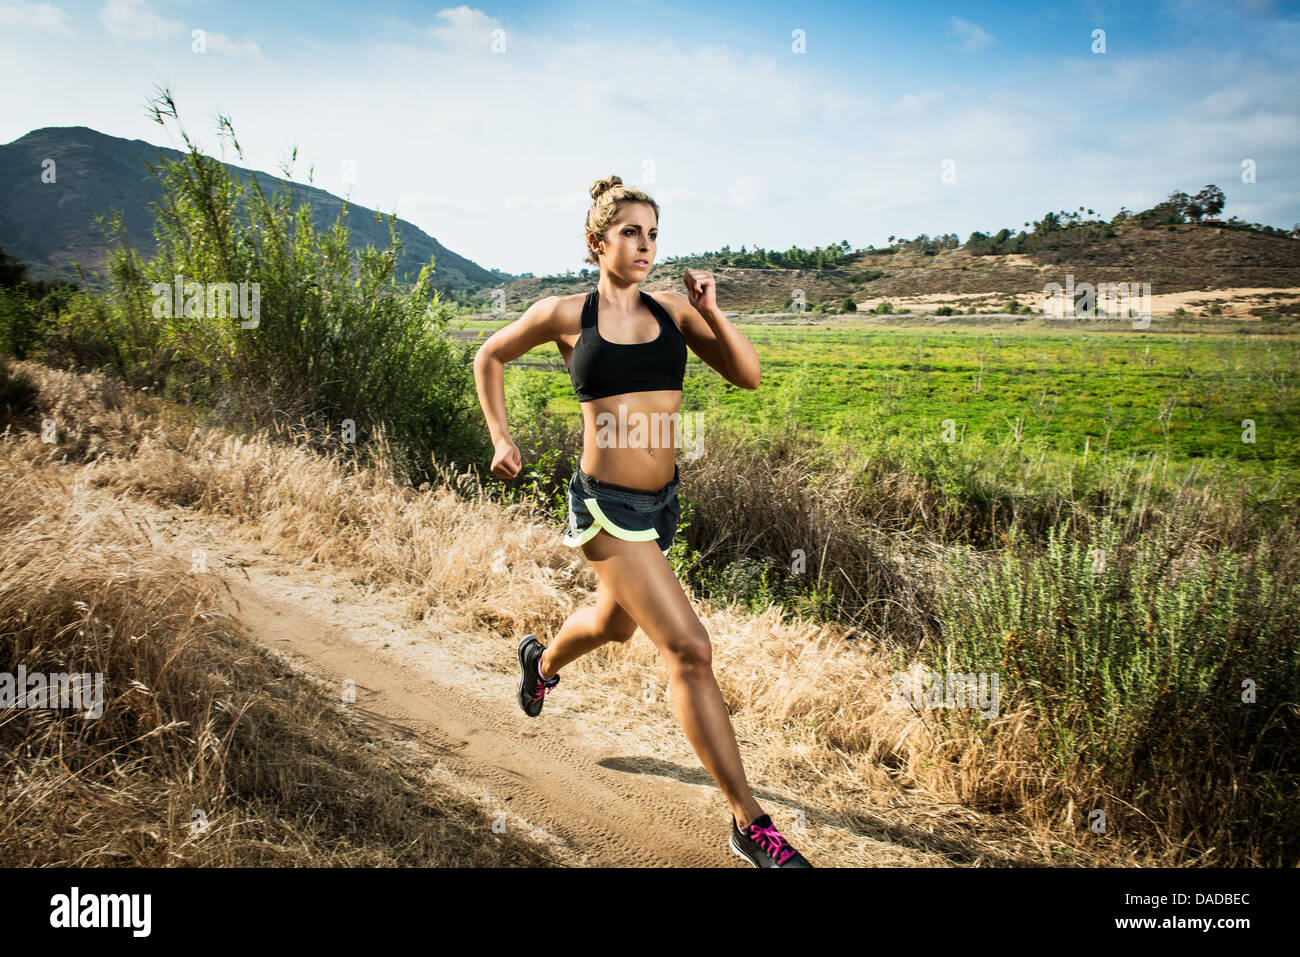 Female runner in rural landscape - Stock Image